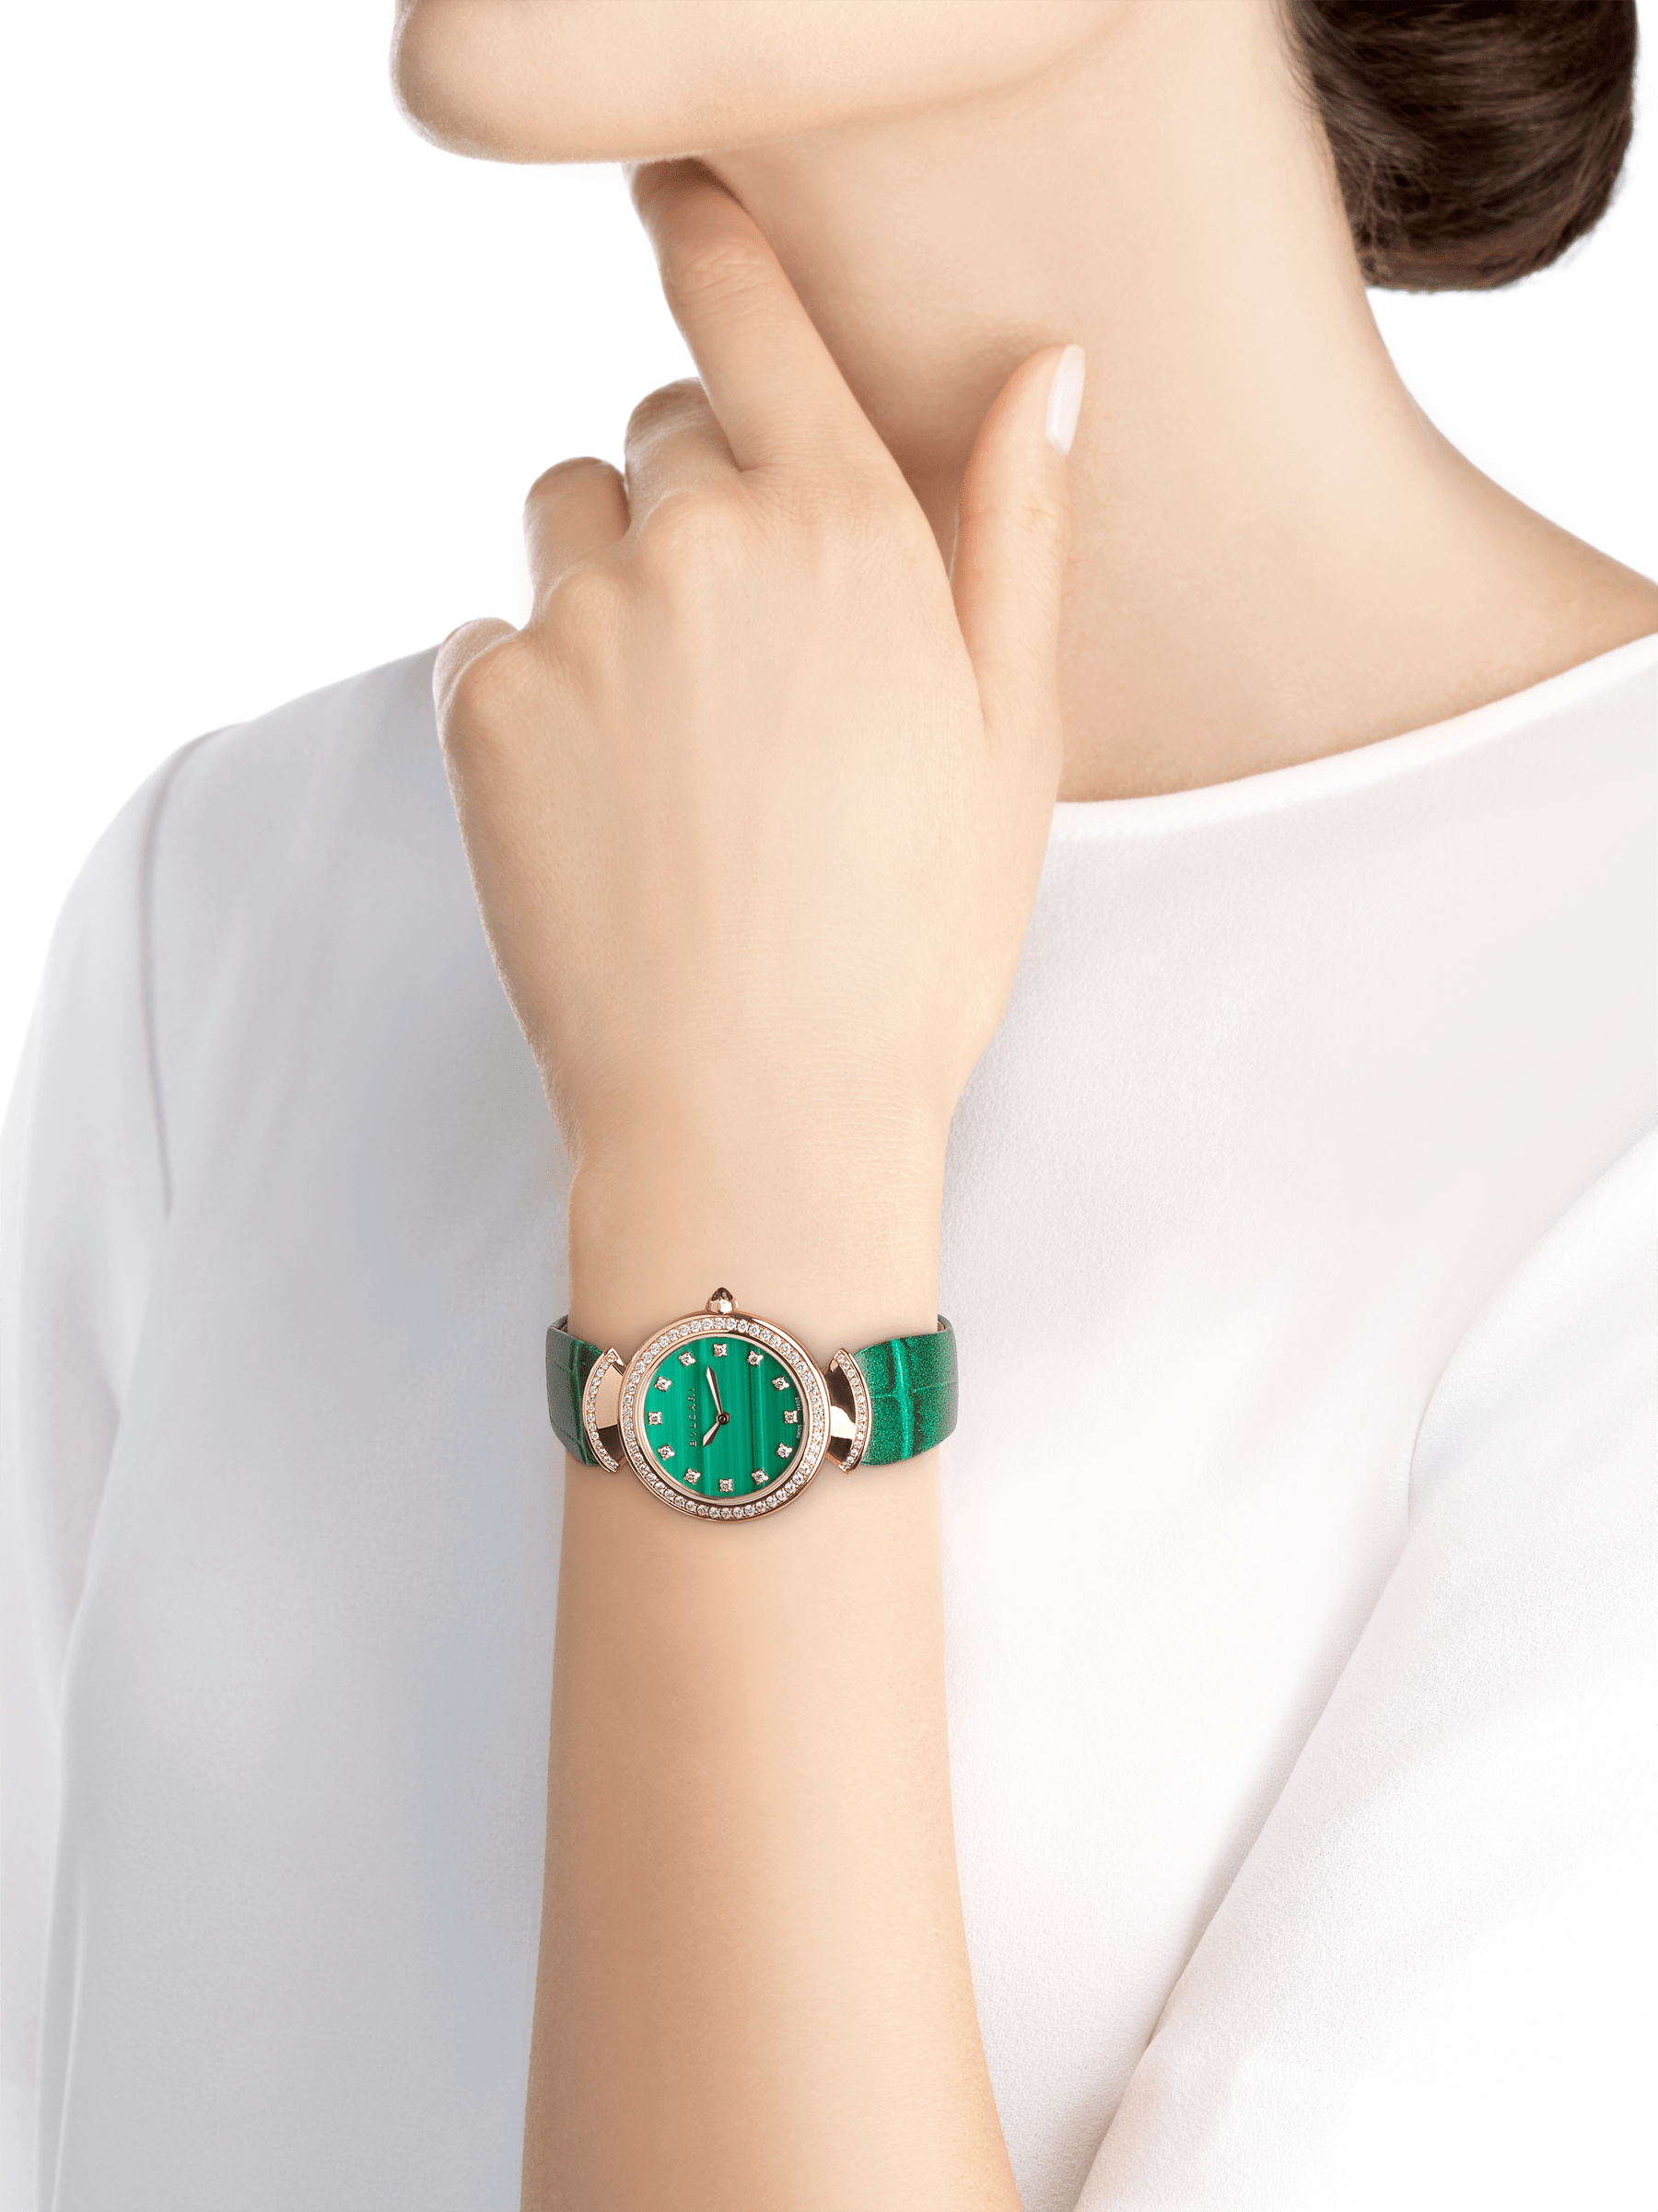 DIVAS' DREAM watch with 18 kt rose gold case, 18 kt rose gold bezel and fan-shaped links both set with brilliant-cut diamonds, malachite dial, diamond indexes and green alligator strap 103119 image 4